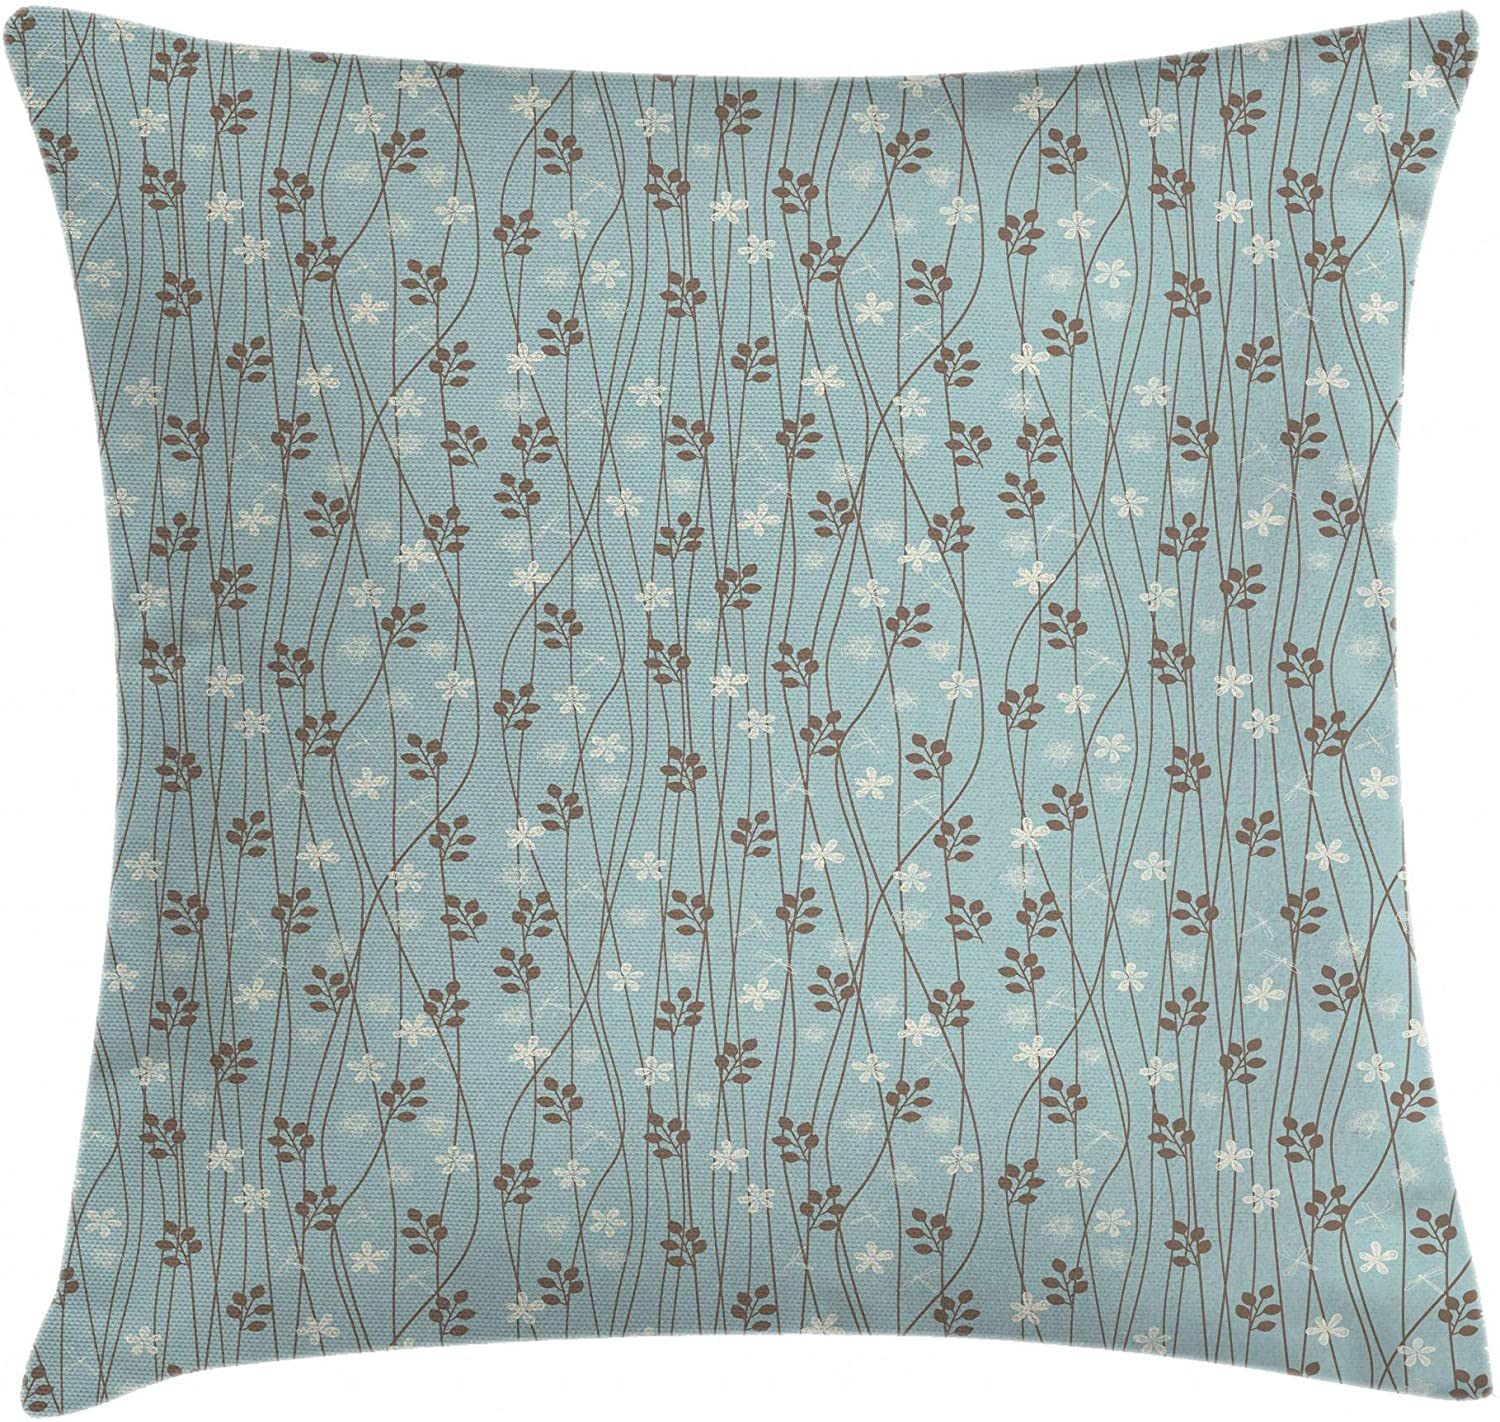 Ambesonne Vintage Throw Pillow Cushion Cover, Floral Rustic Composition with Blossoming Branches Wildflowers Garden, Decorative Square Accent Pillow Case, 16